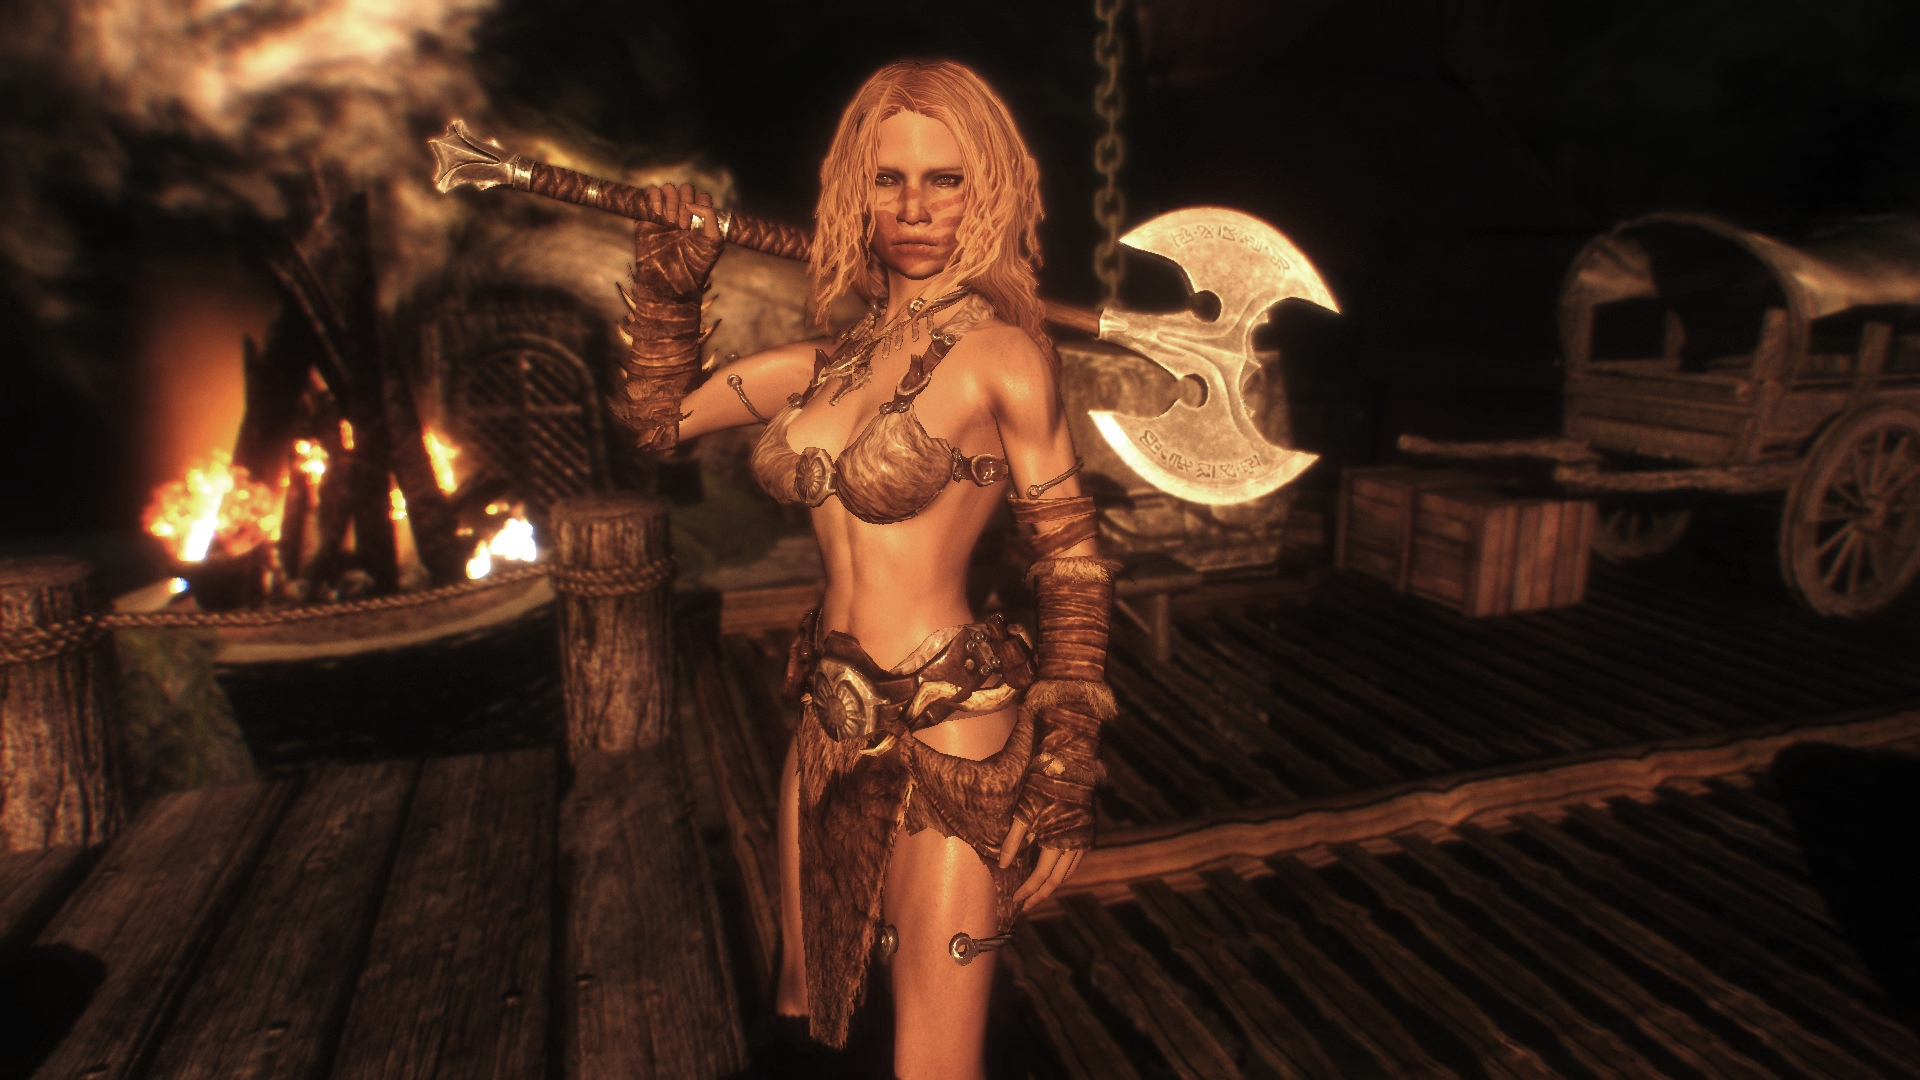 Female barbarian pictures sex images